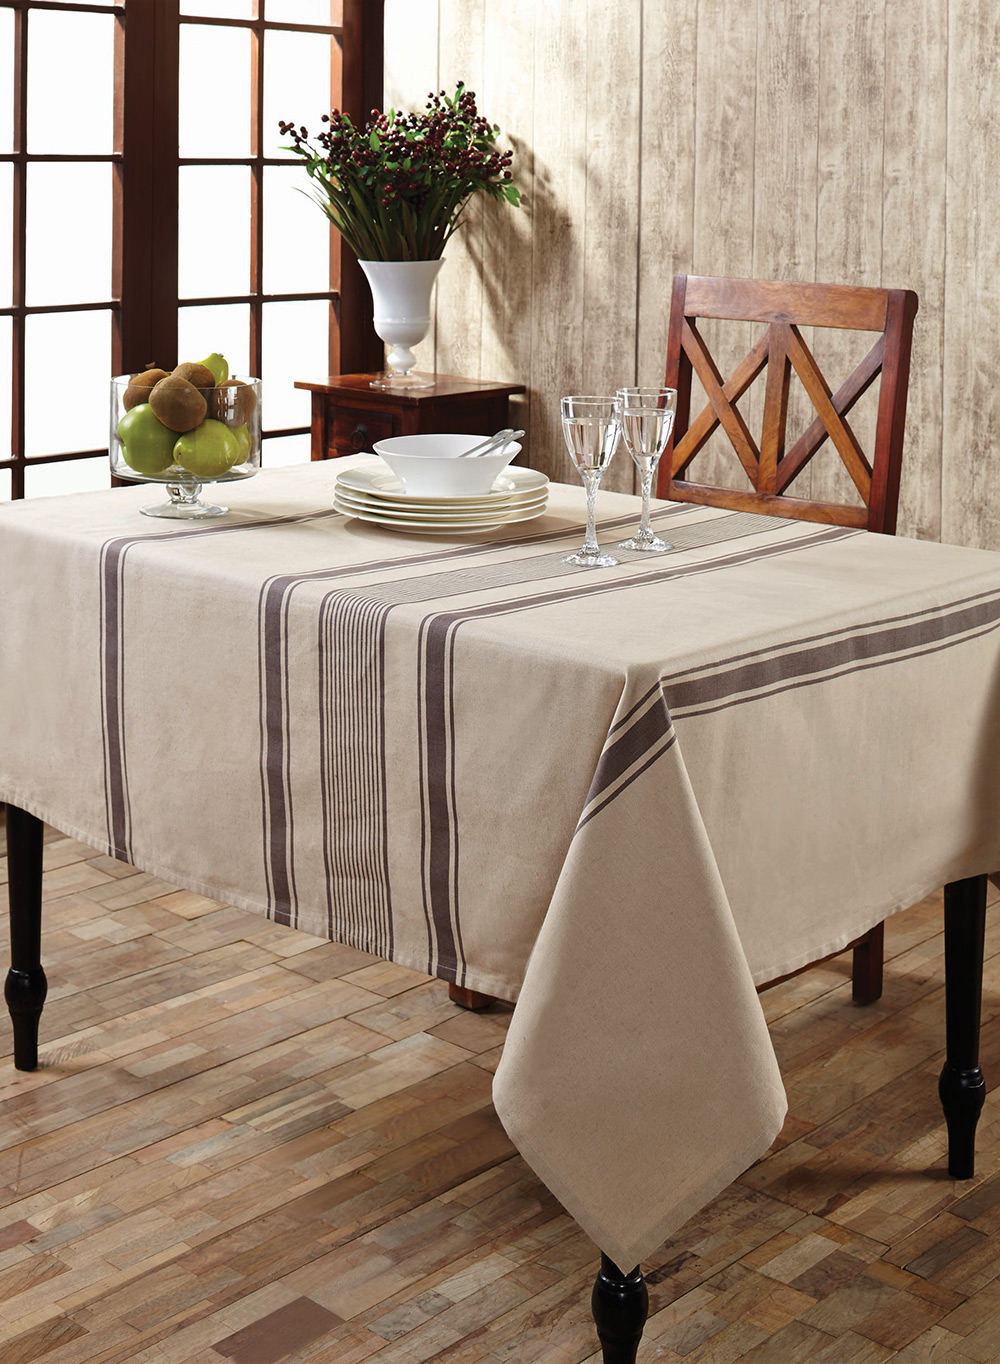 Charlotte Slate 57 X 80 Inch Tablecloth, By VHC Brands Charlotte Slate  Tablecloth, By VHC Brands